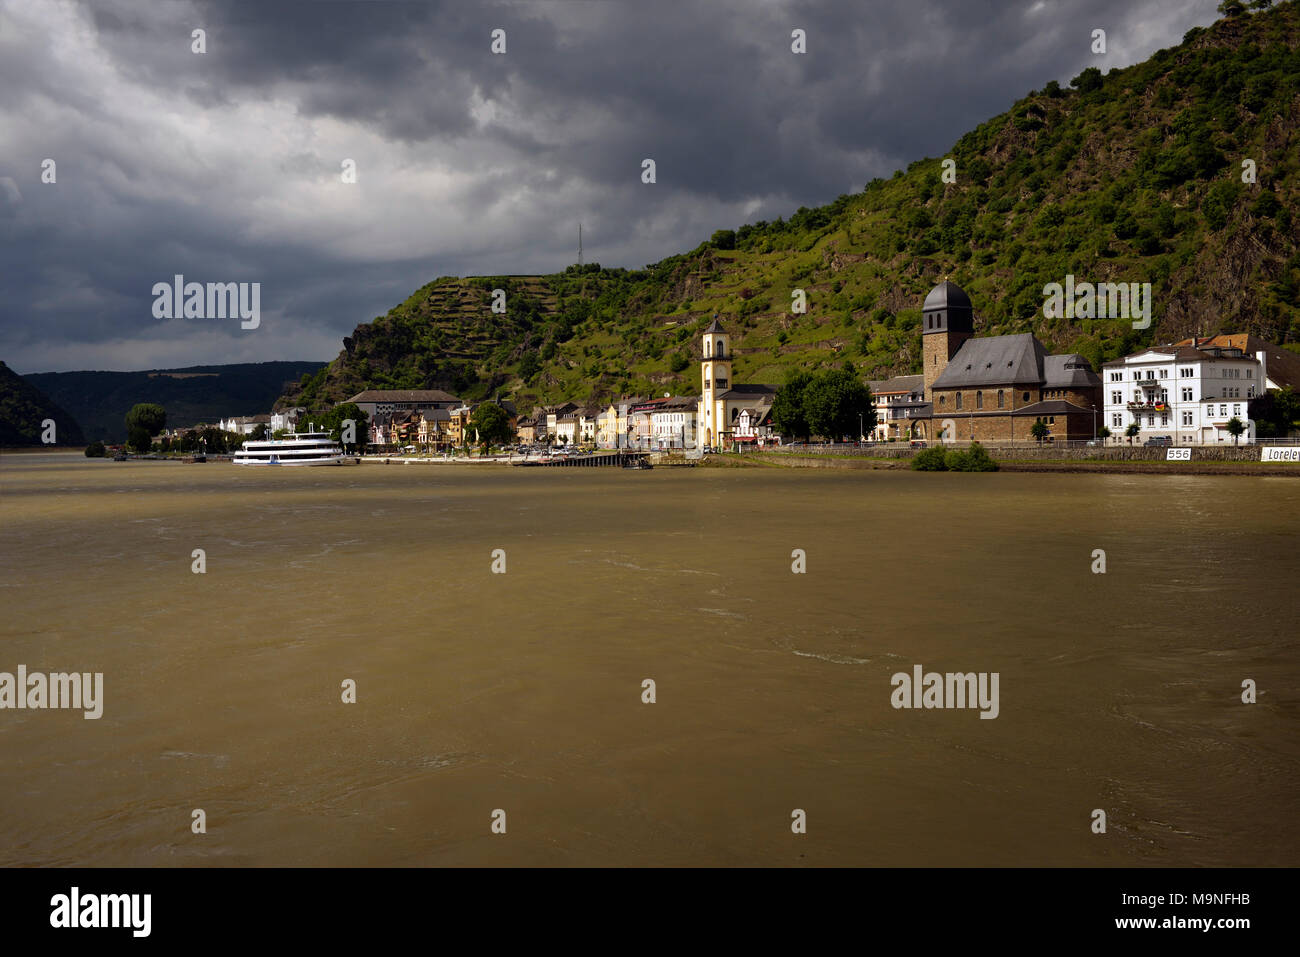 Lorelei (Lorely) on the River Rhein in Germany is the site of ancient legendary folklore. - Stock Image